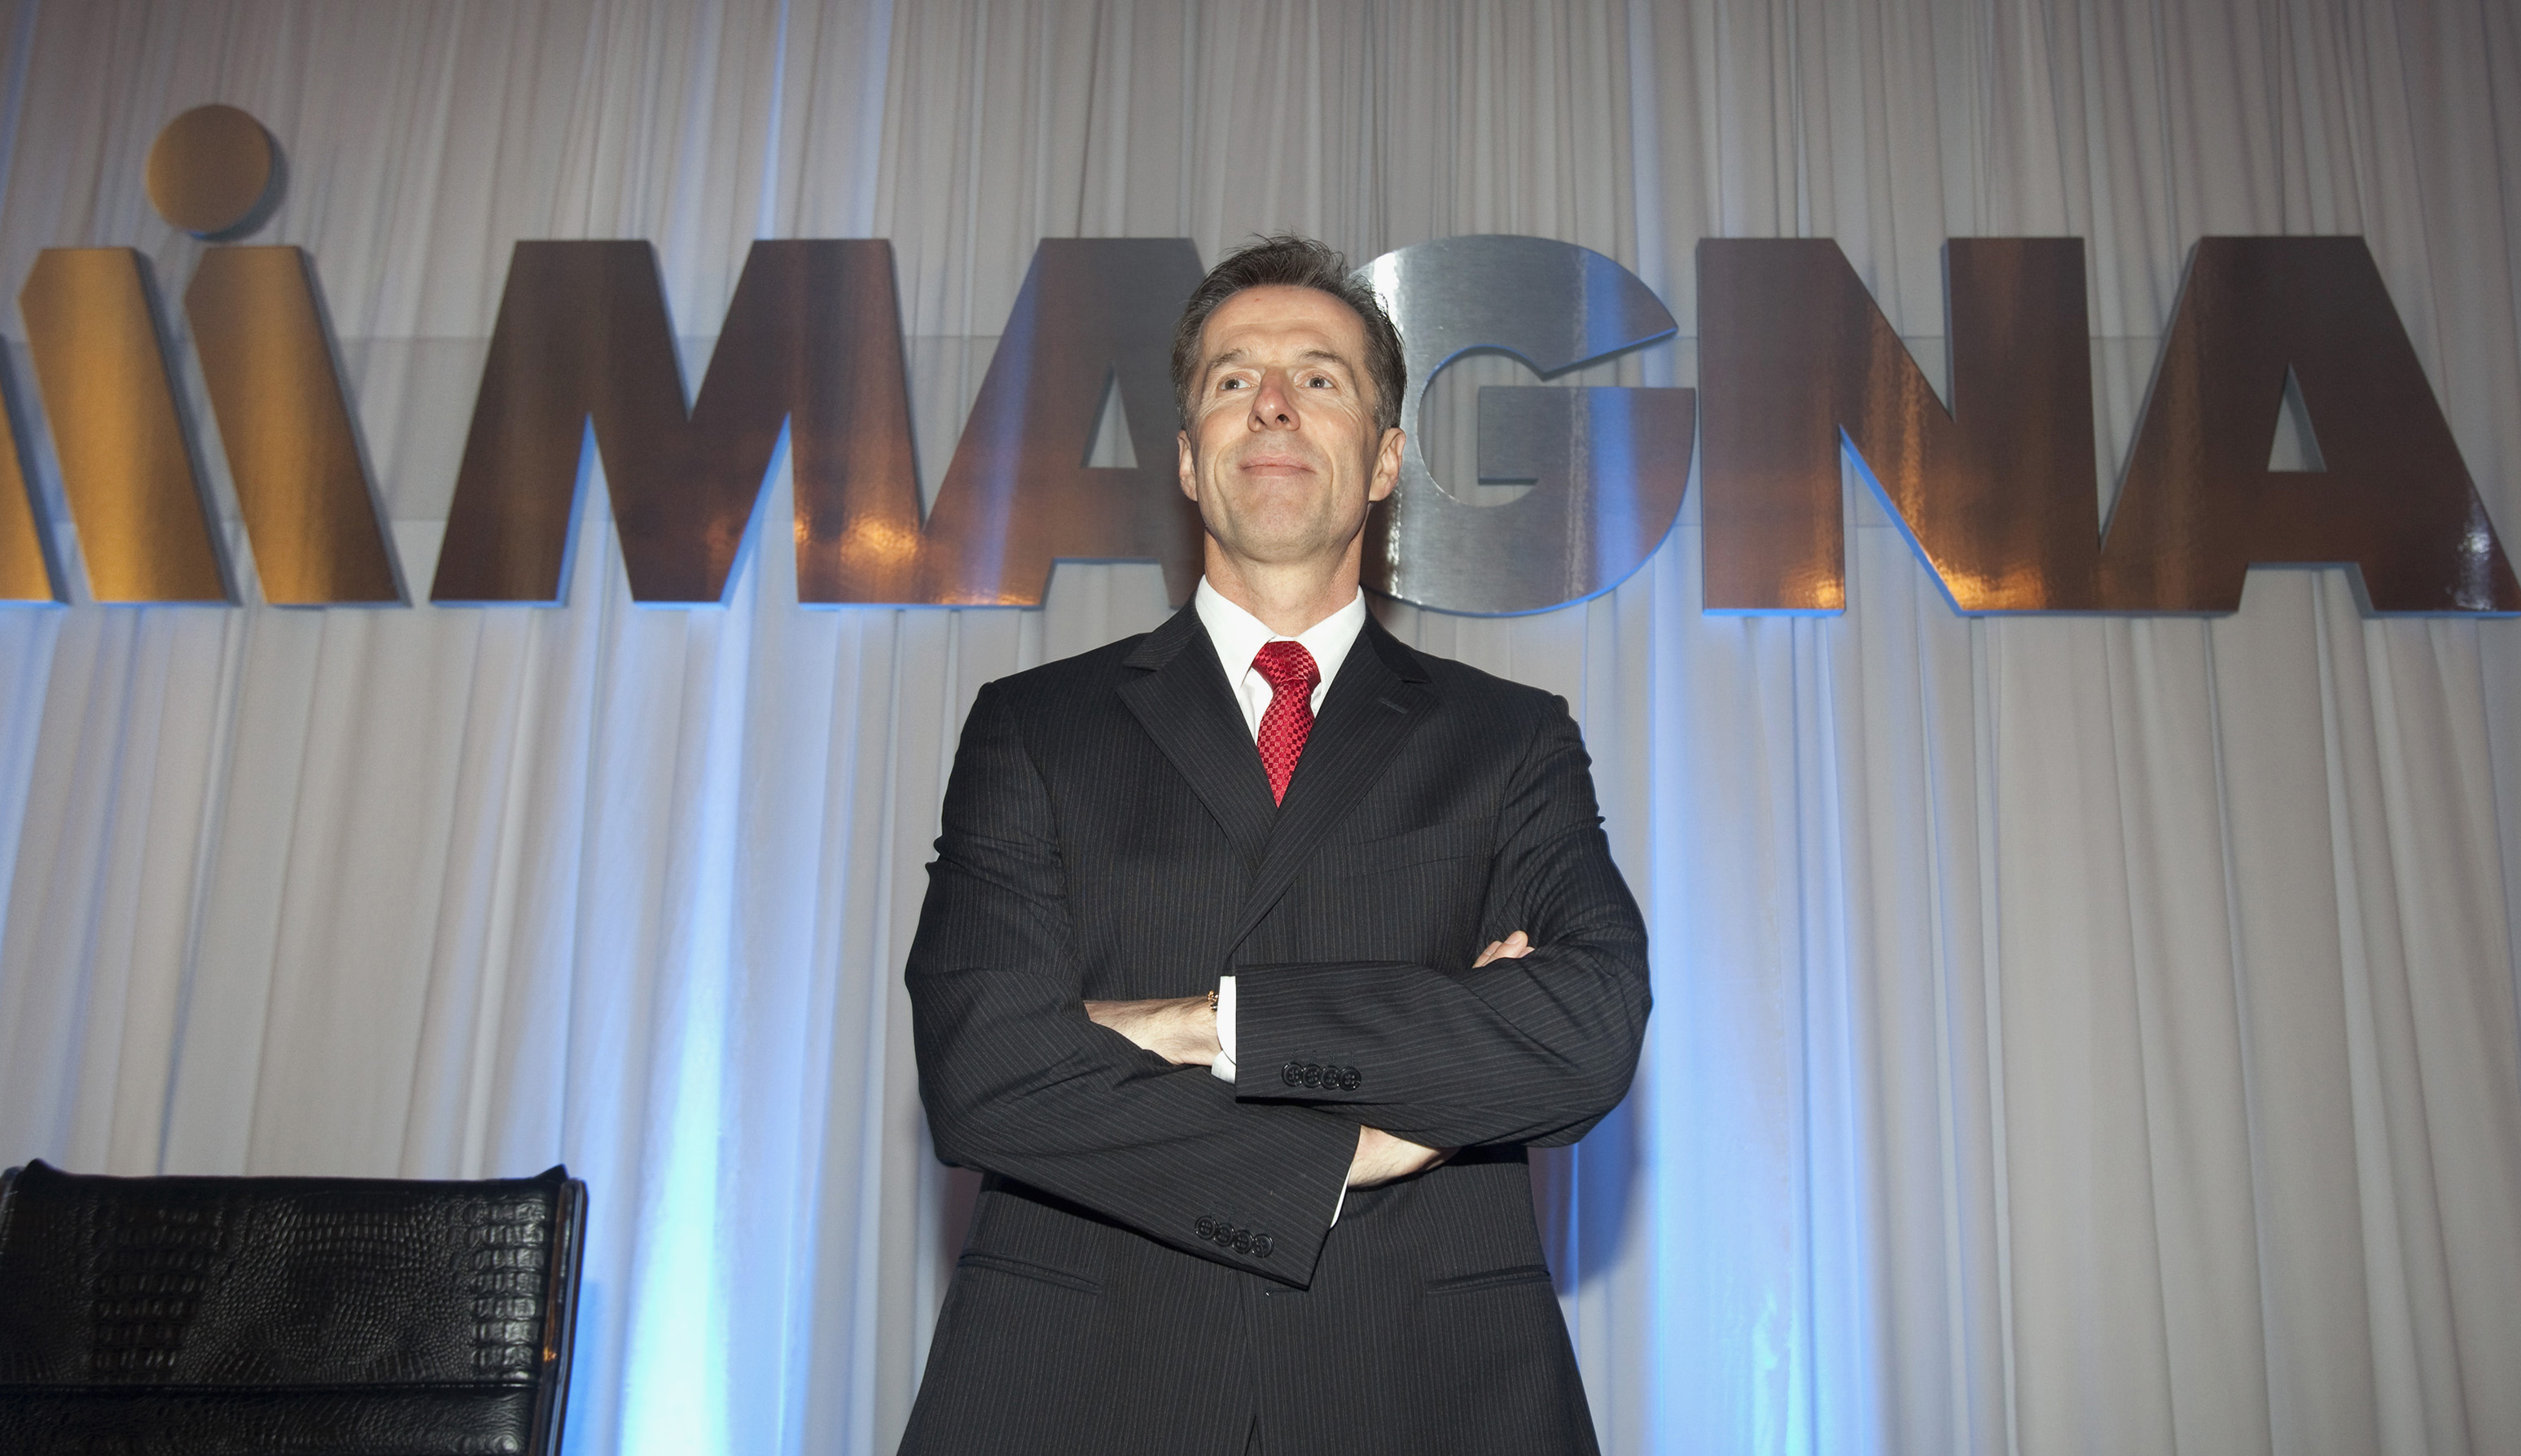 CEO for Magna International Inc. Walker waits for the annual general meeting to start in Toronto